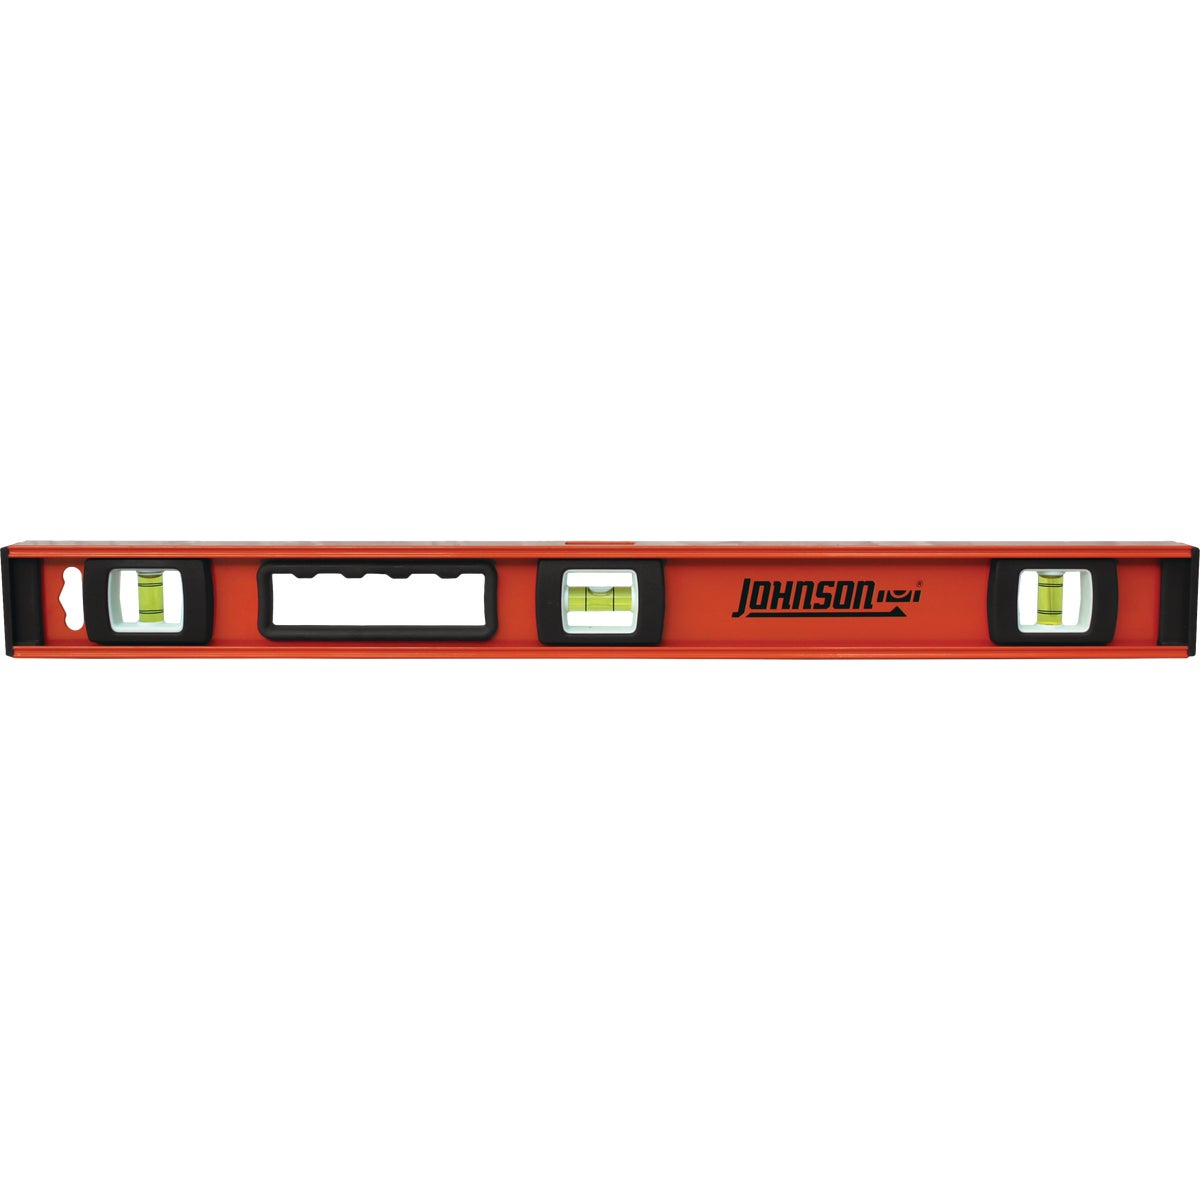 "24"" HD I-BEAM LEVEL - 3724 by Johnson Level & Tool"